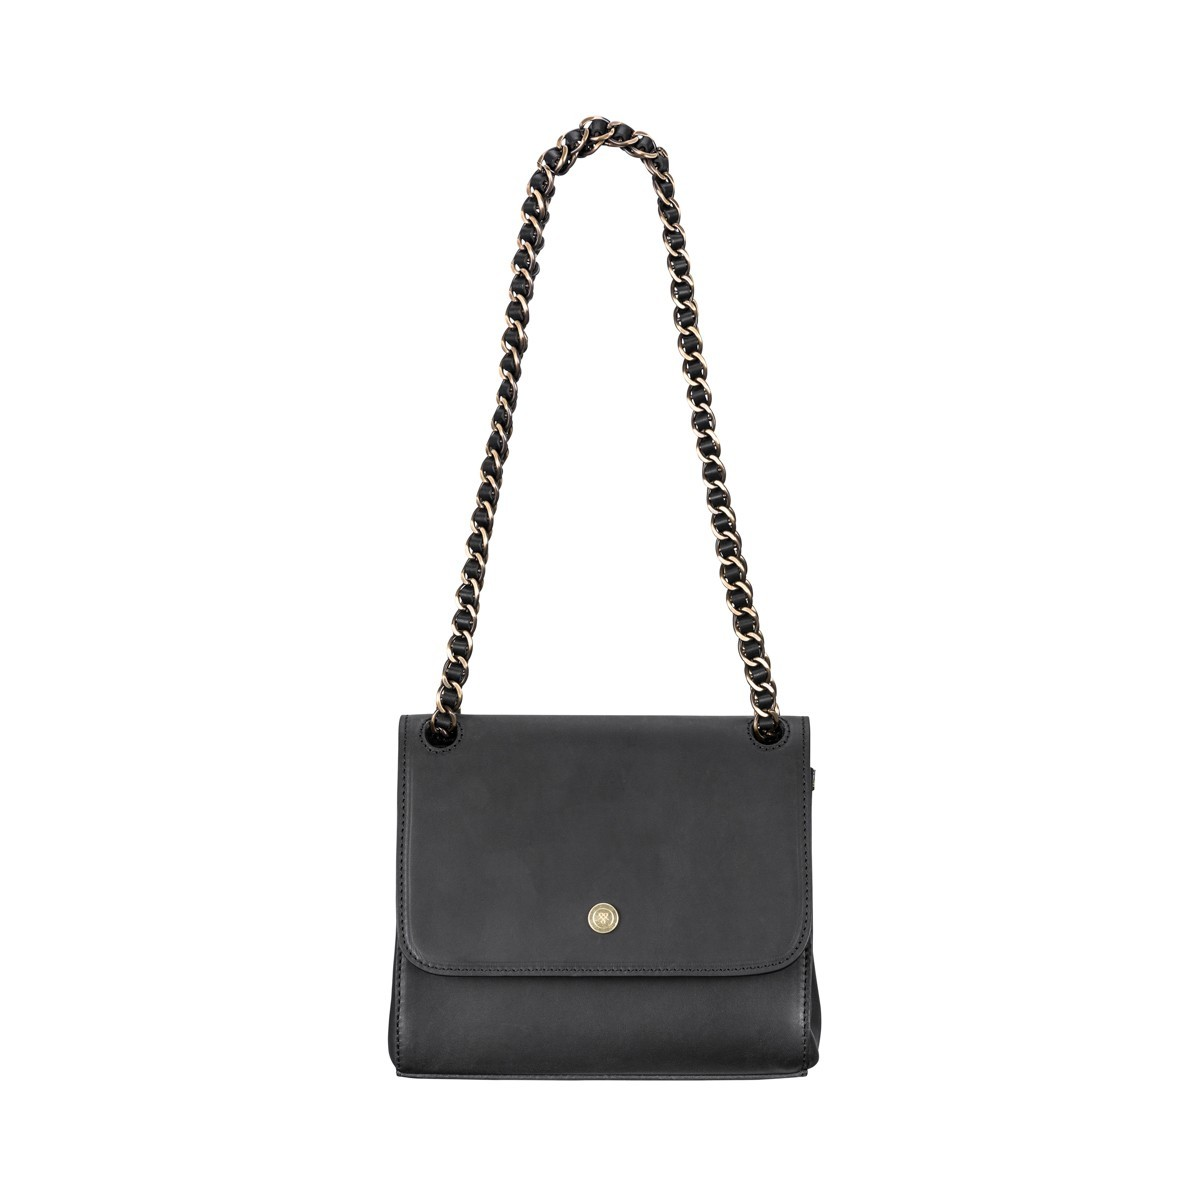 3dc565a583fa bridle leather crossbody bag with chain handle